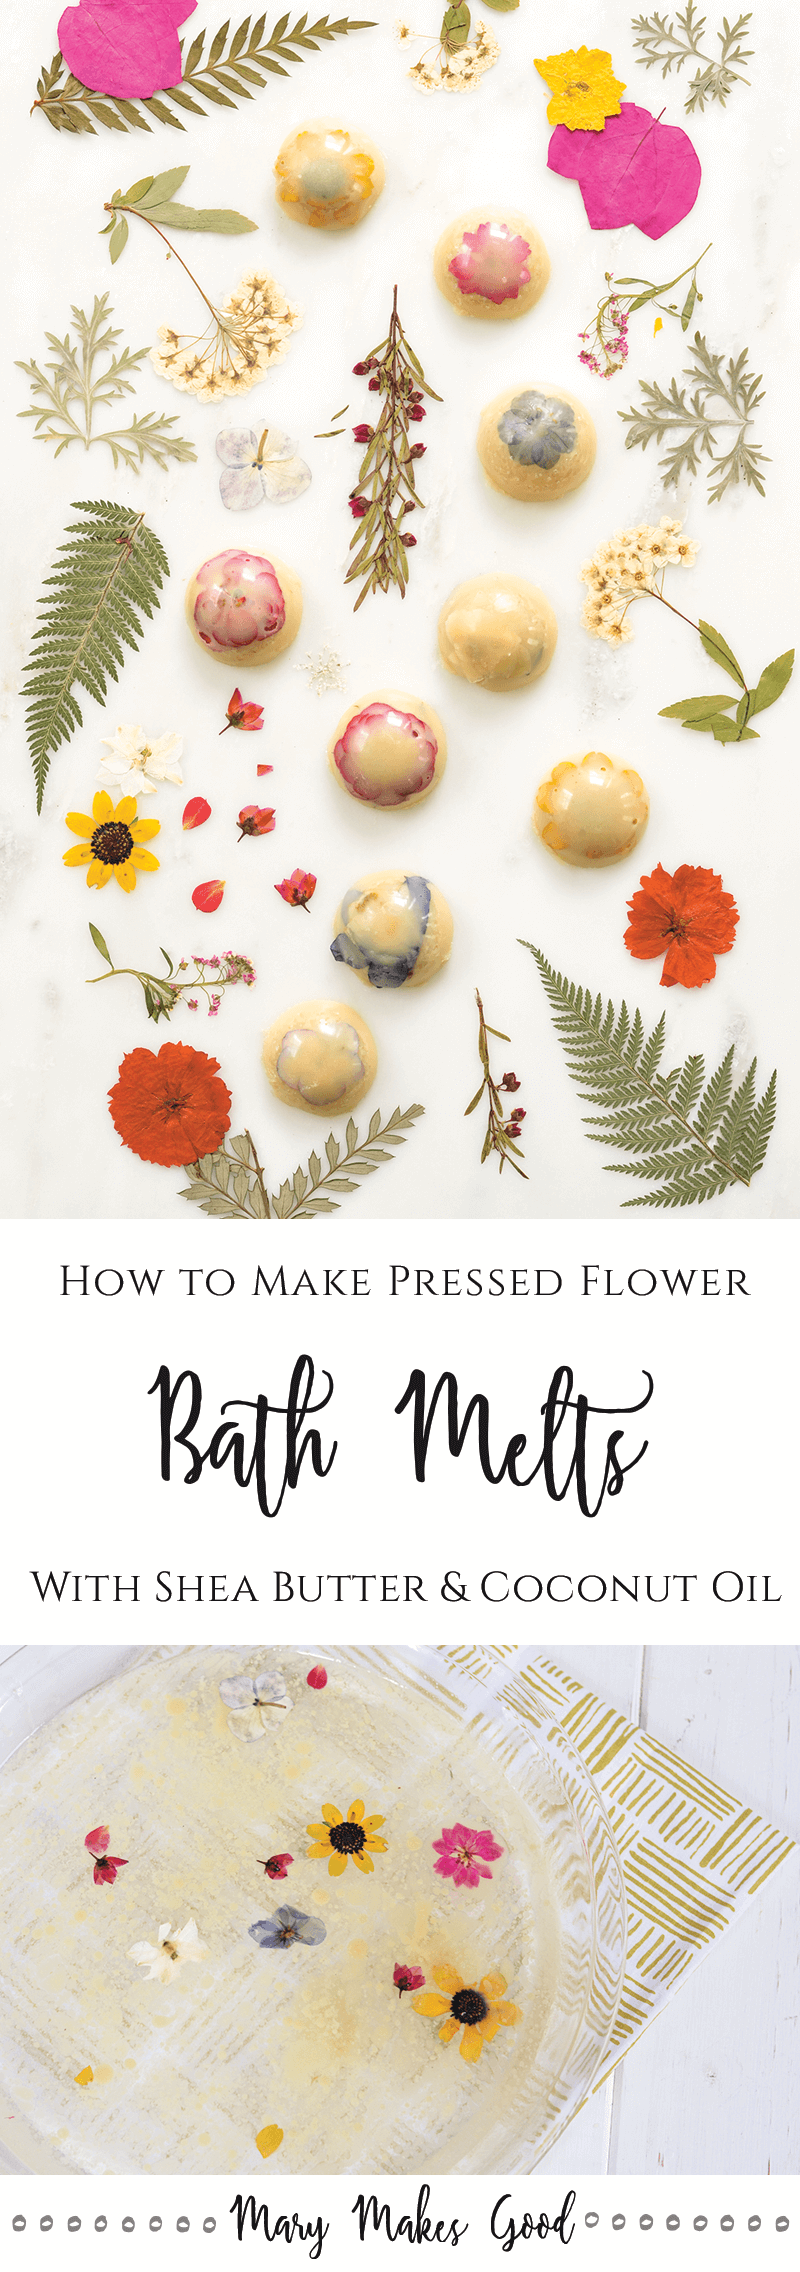 Pressed Flower Bath Melts - An Easy Recipe for Handmade Bath Treats